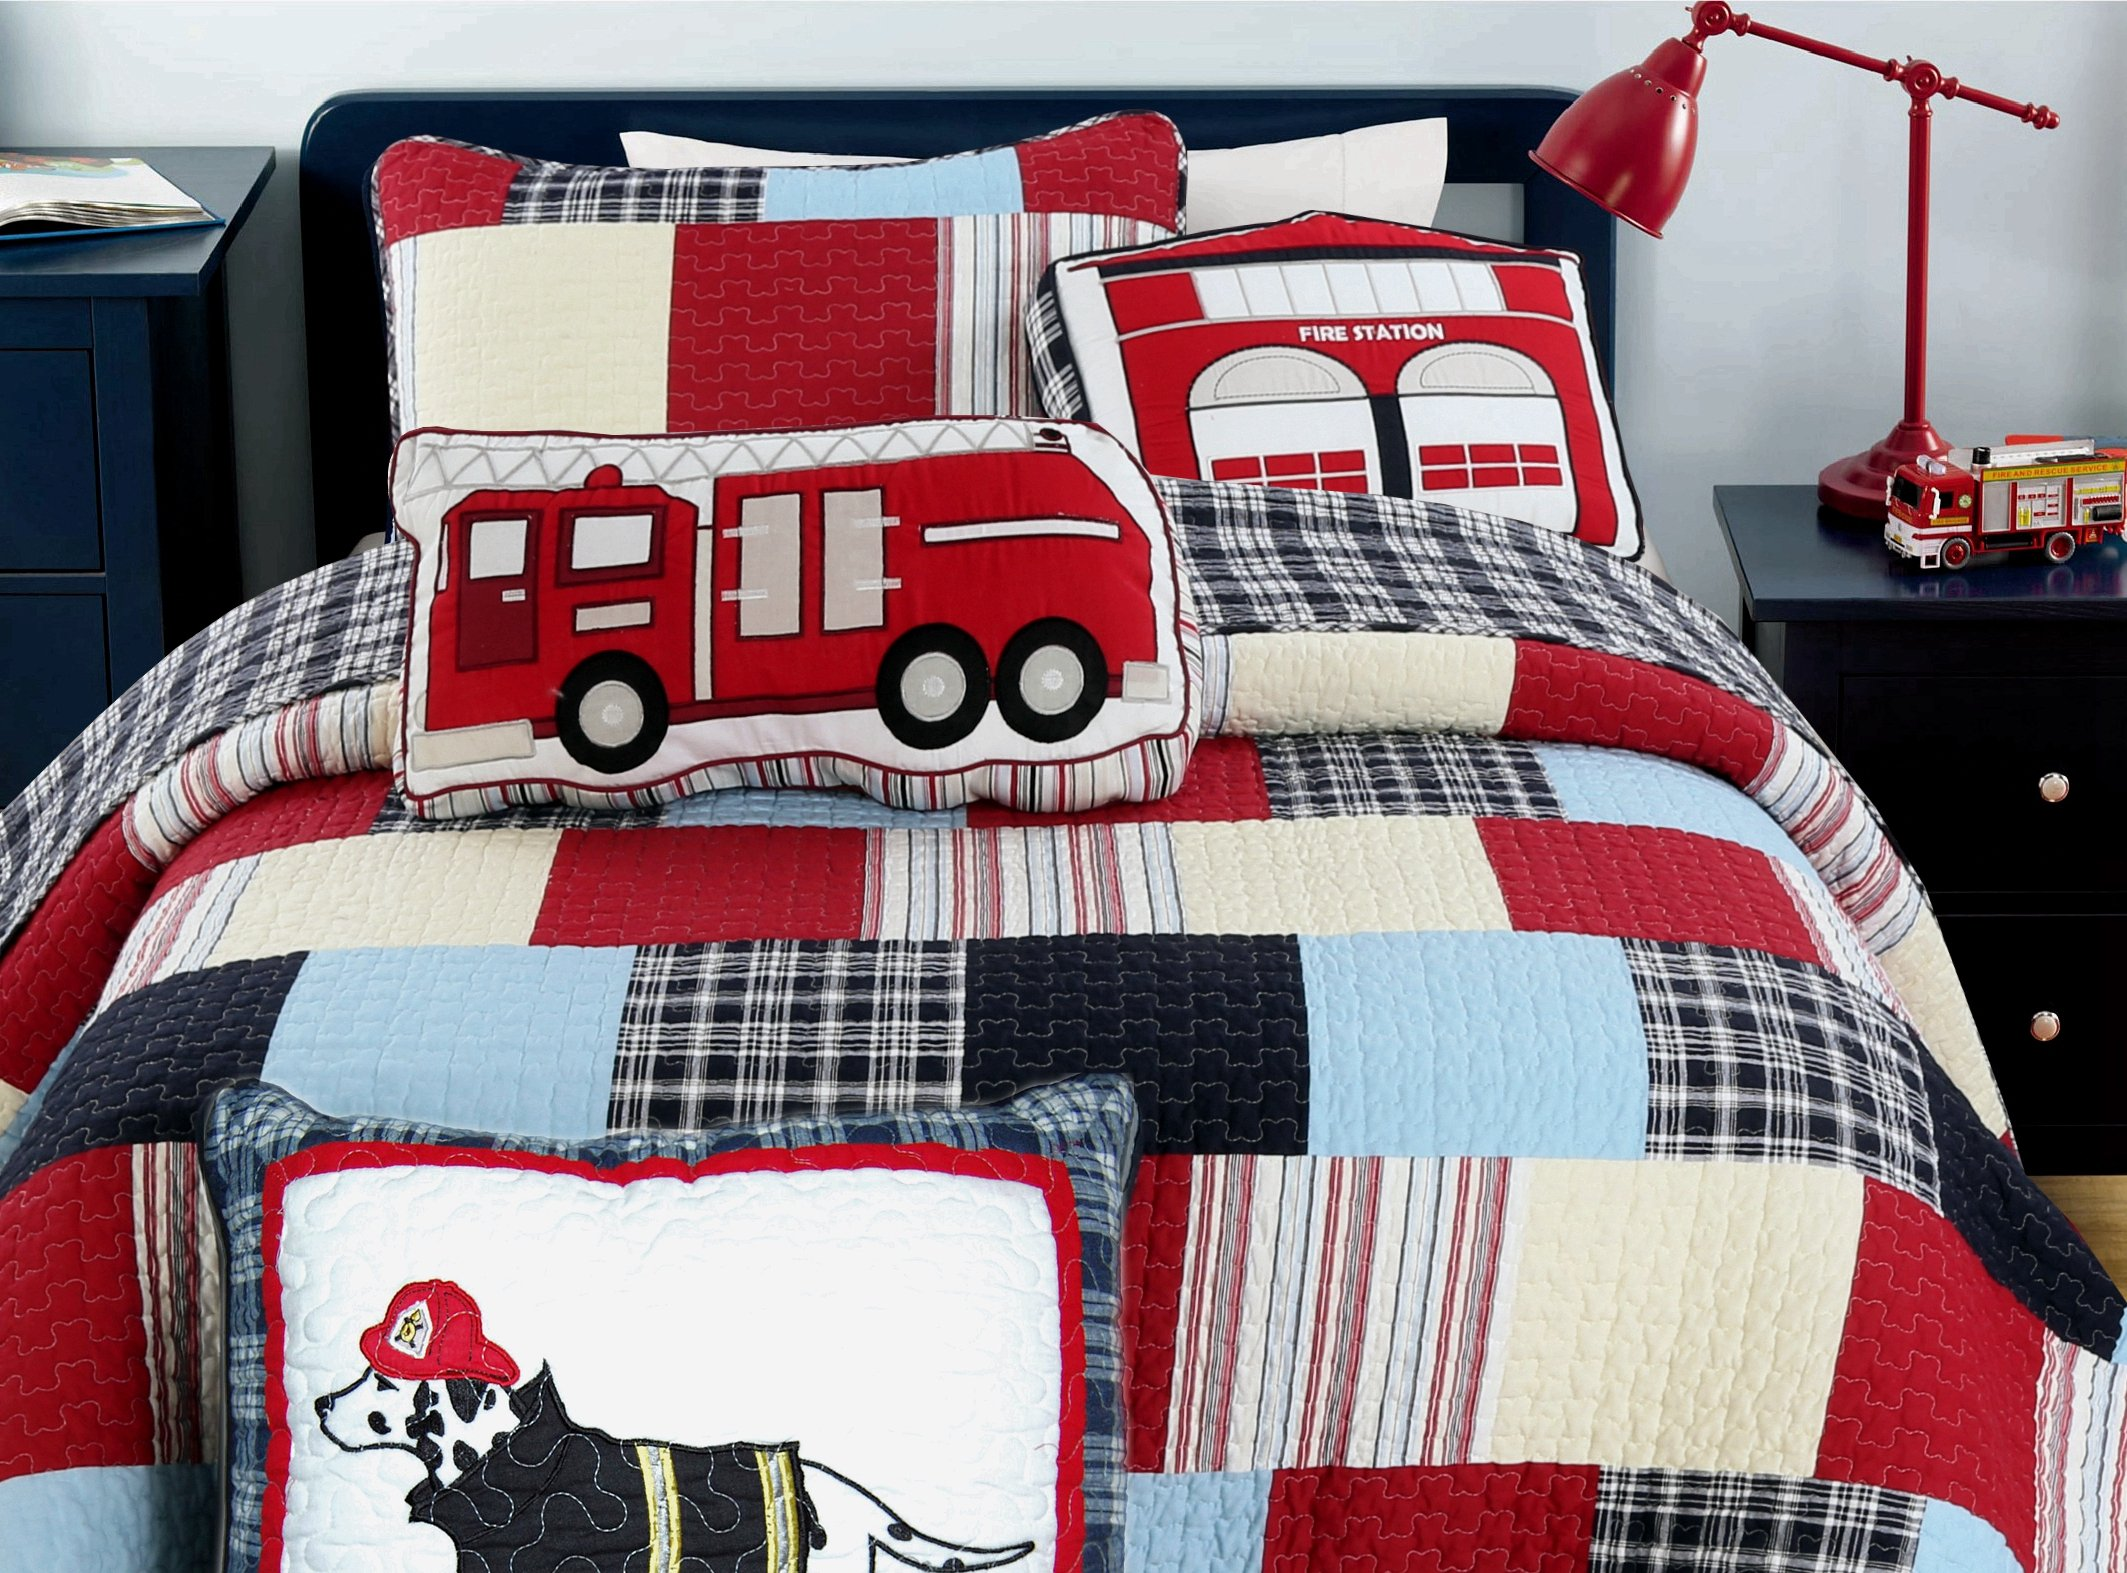 Cozy Line Home Fashion Cars Patchwork Bedding Quilt Set for Boy, 100% COTTON Navy/Blue/Red Grid Stripe Printed Reversible Bedspread Coverlet,Gifts for Kids(Thomas Firetruck Patchwork, Twin - 2 piece)